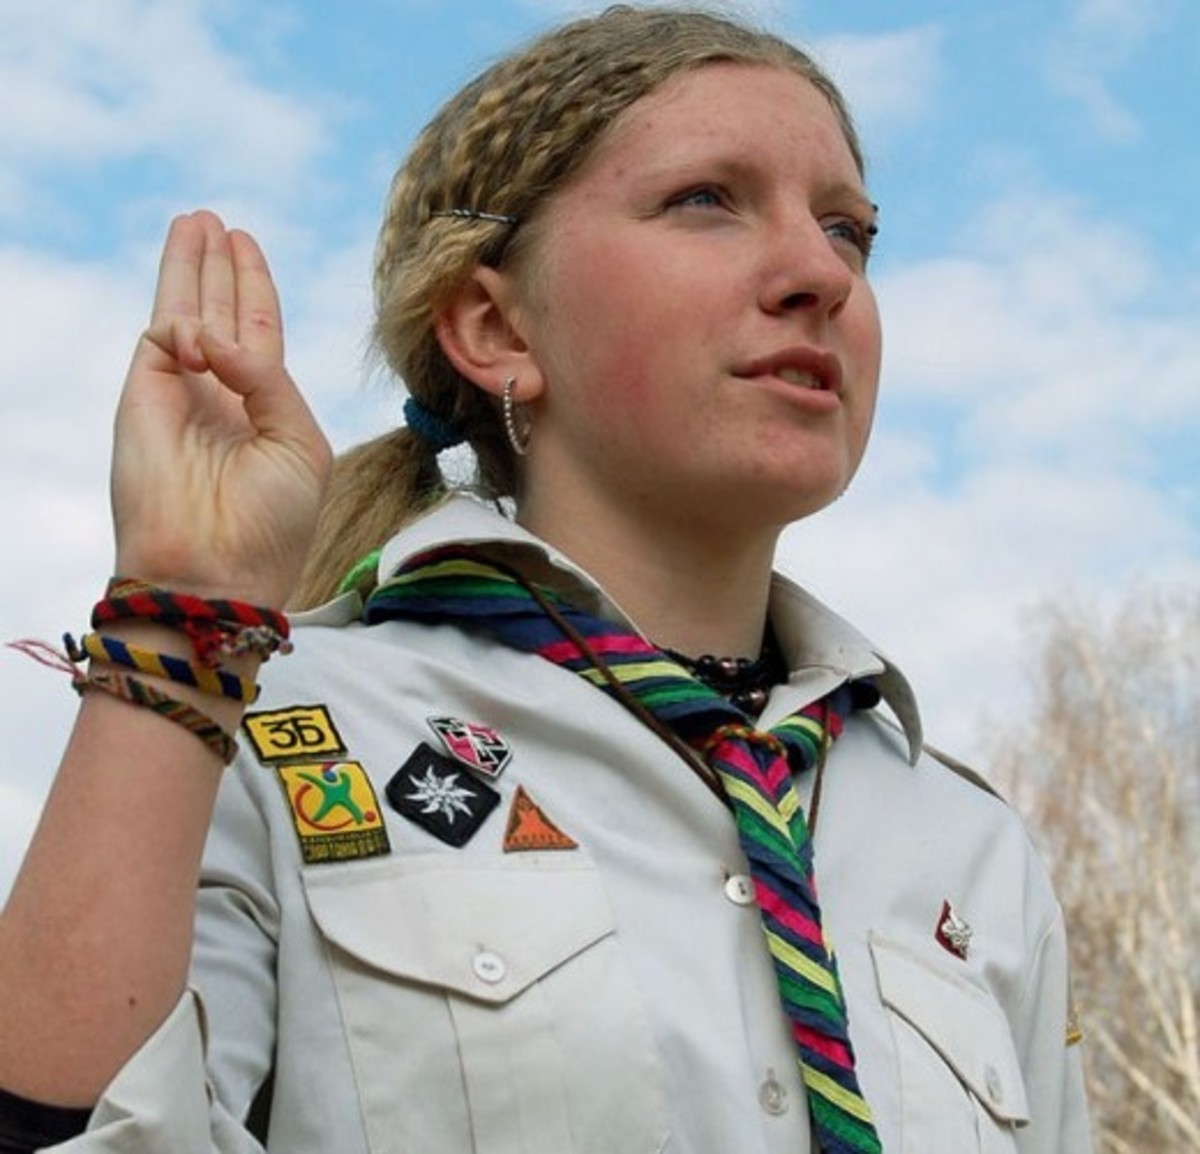 The scouts' salute demonstrates self-respect, and respect for others.